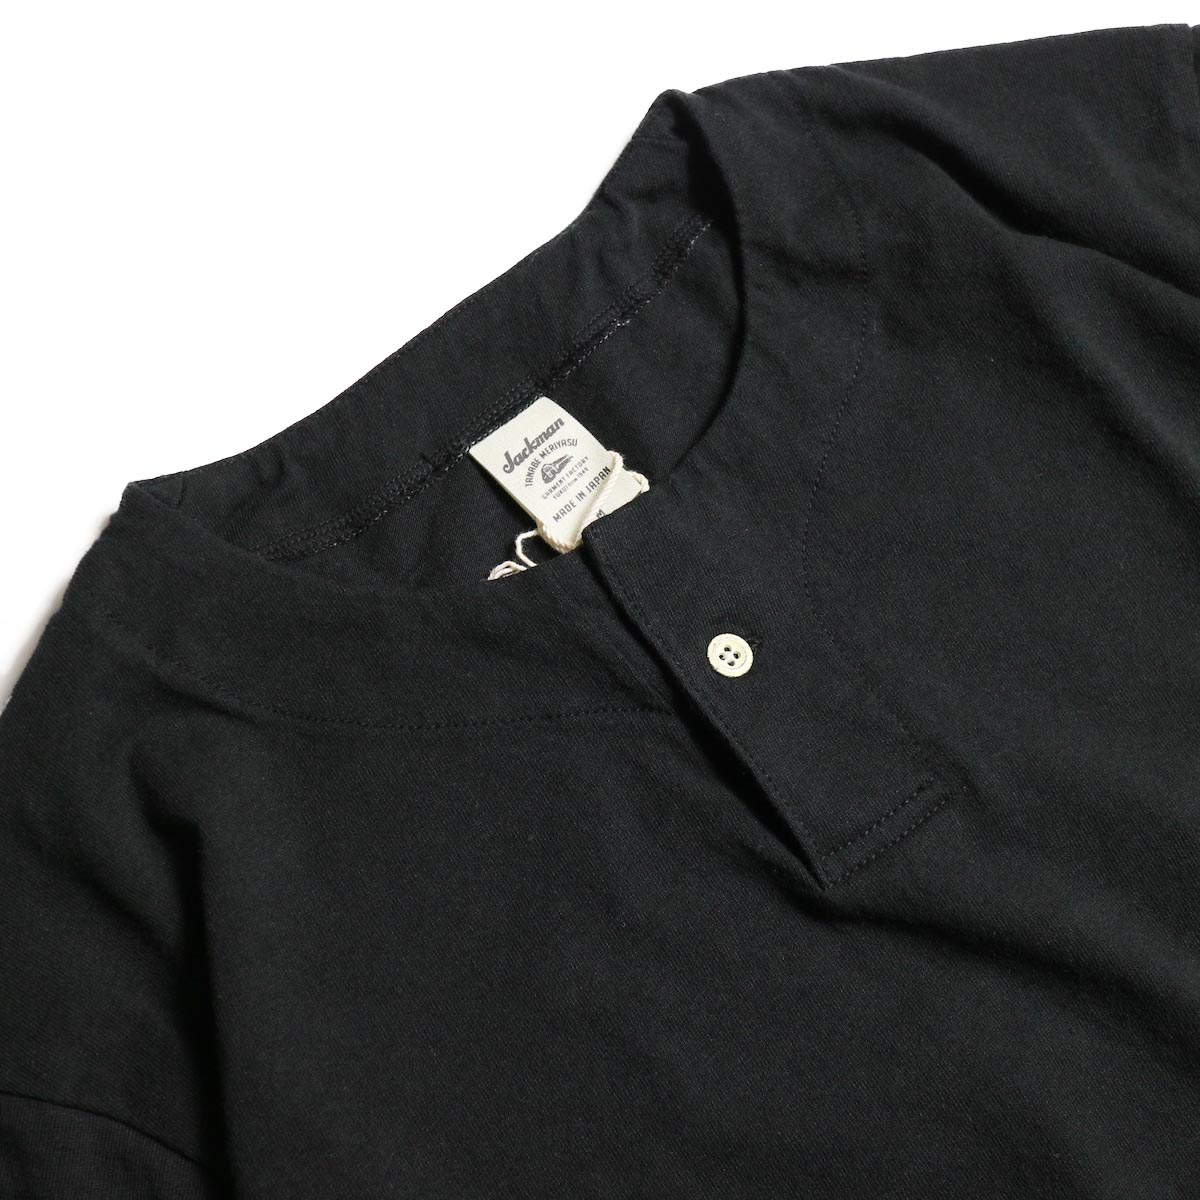 Jackman / Henley neck T-Shirt (Black)ヘンリーネック